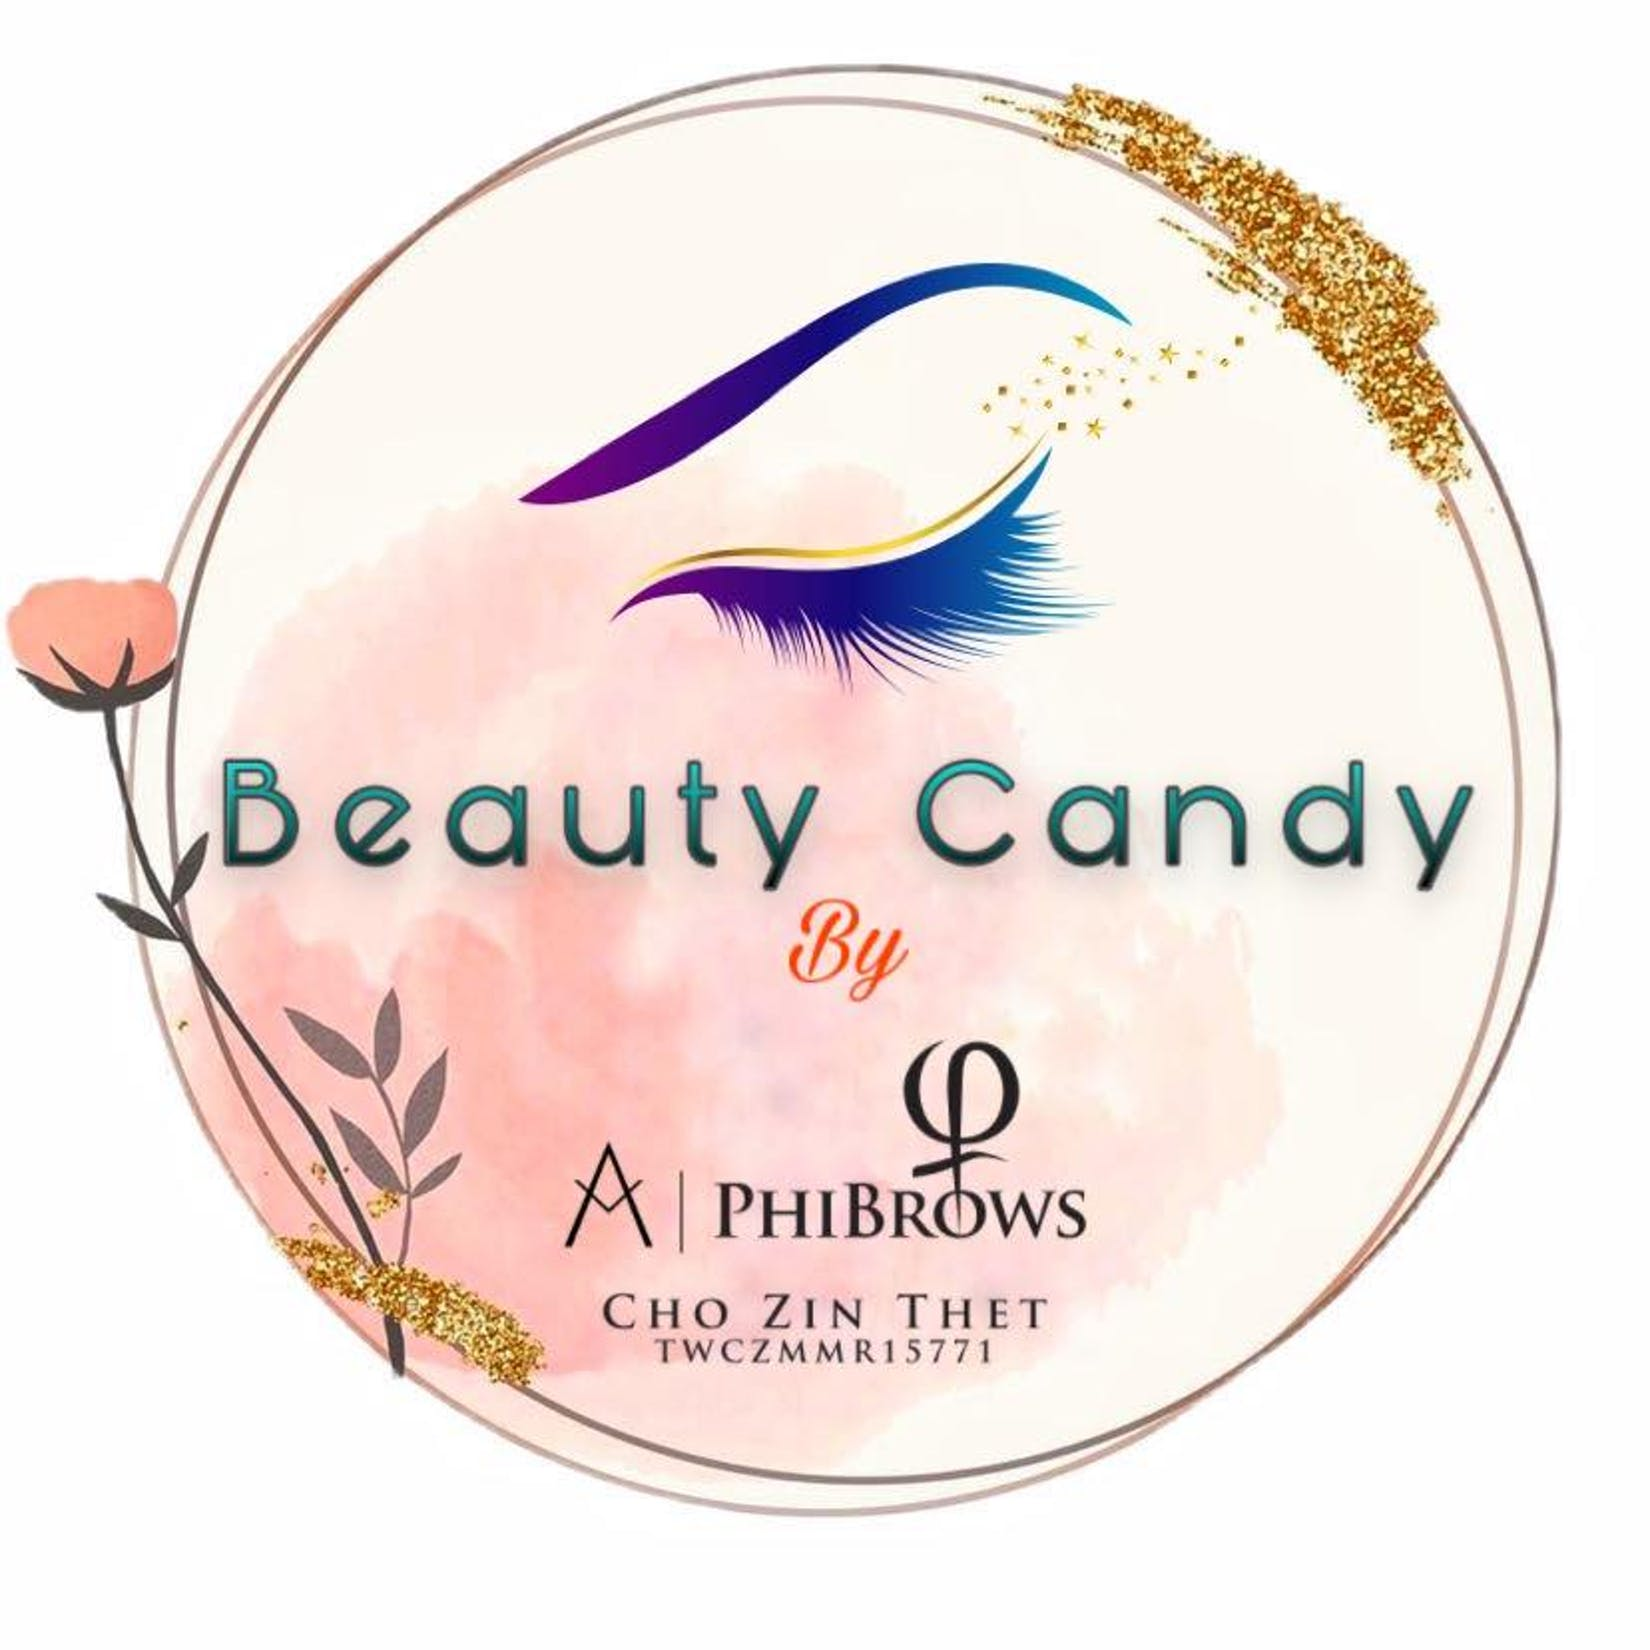 Beauty Candy Eyebrows Studio | Beauty